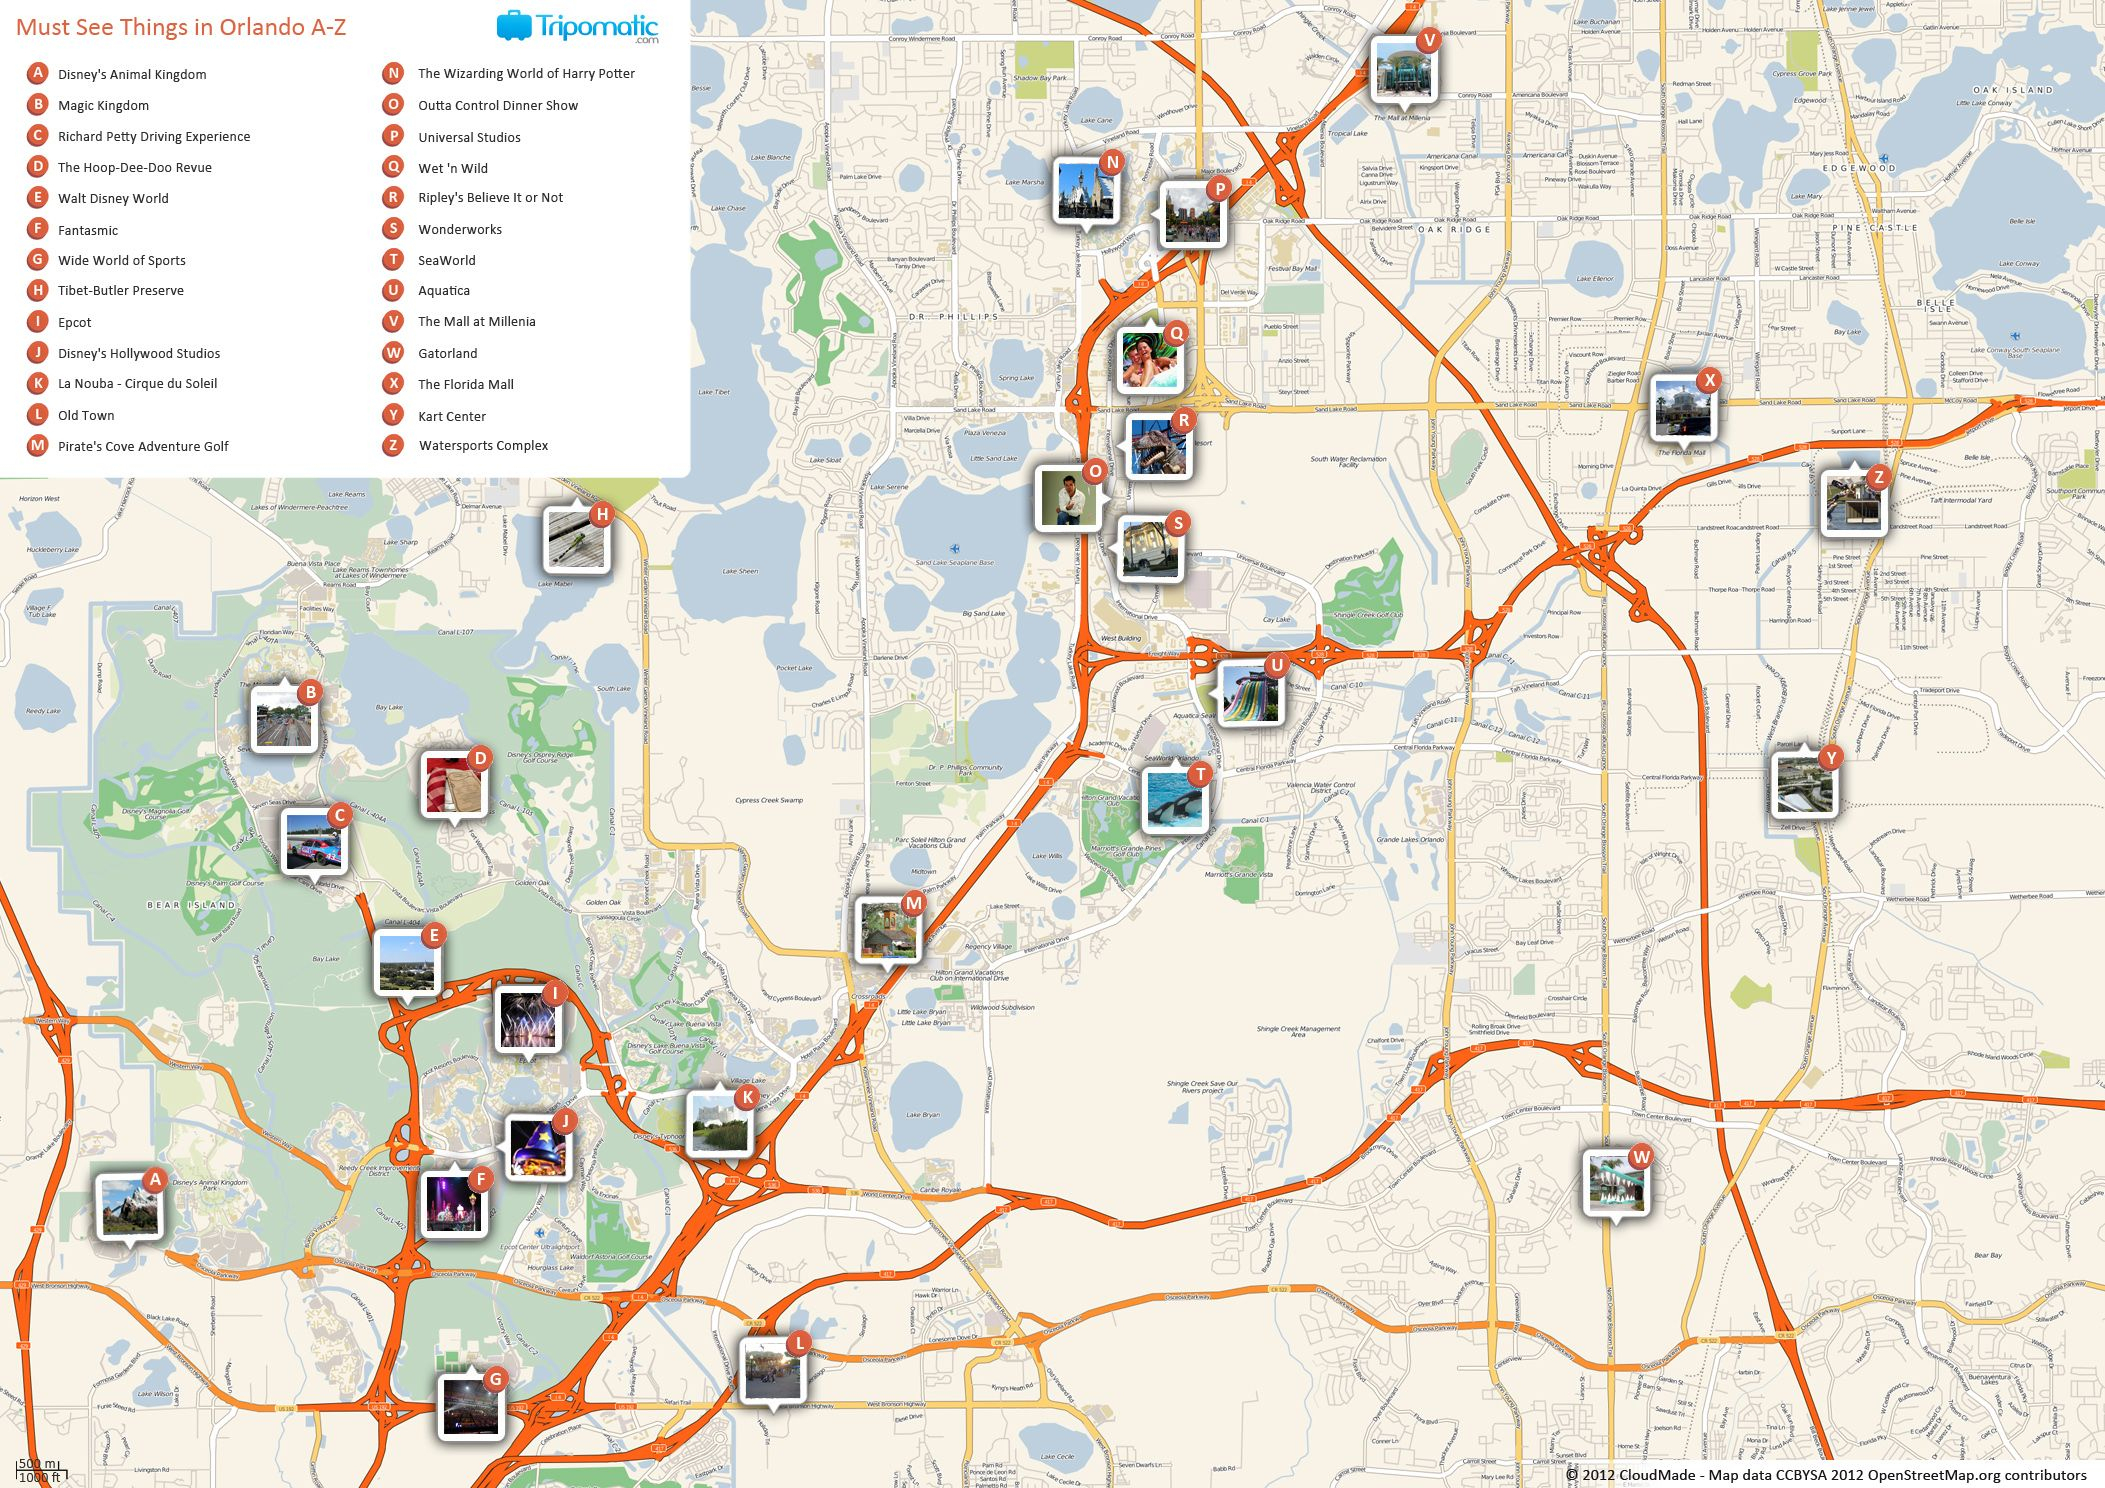 Orlando Printable Tourist Map | Free Tourist Maps ✈ | Orlando Map - Detailed Map Of Orlando Florida